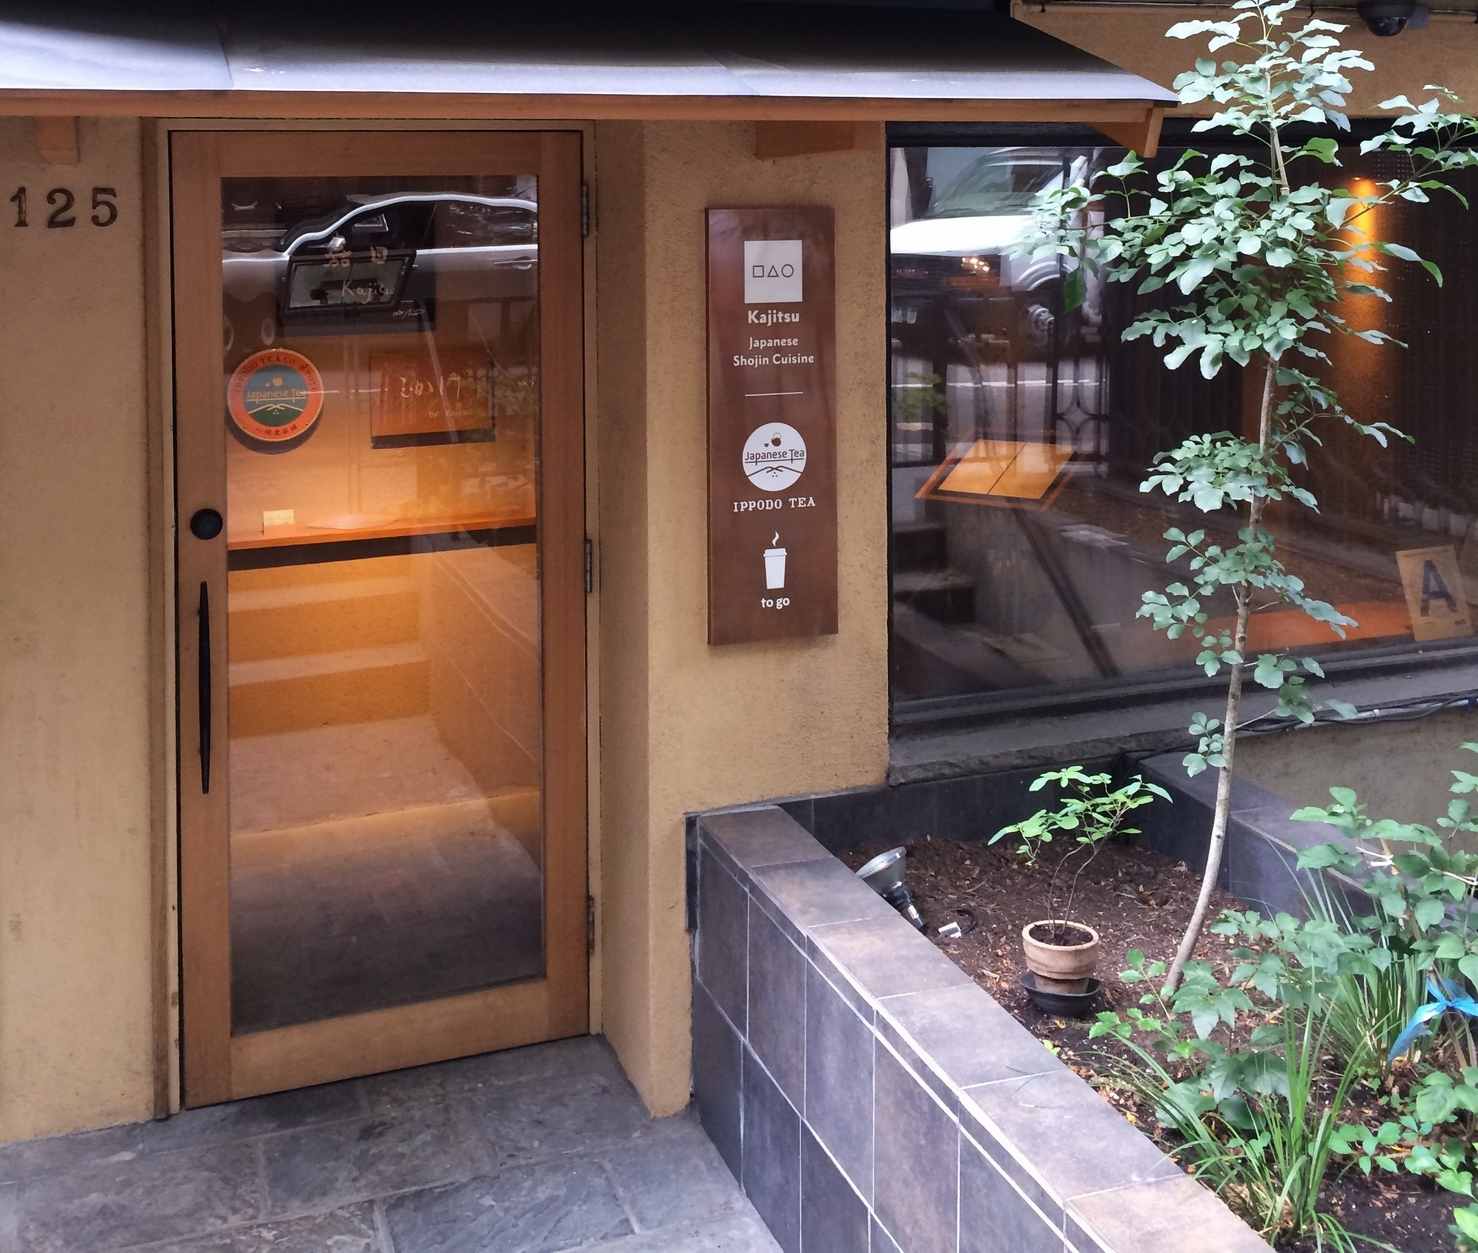 Ippodo Tea's New York branch is located at 125 E 39th St.